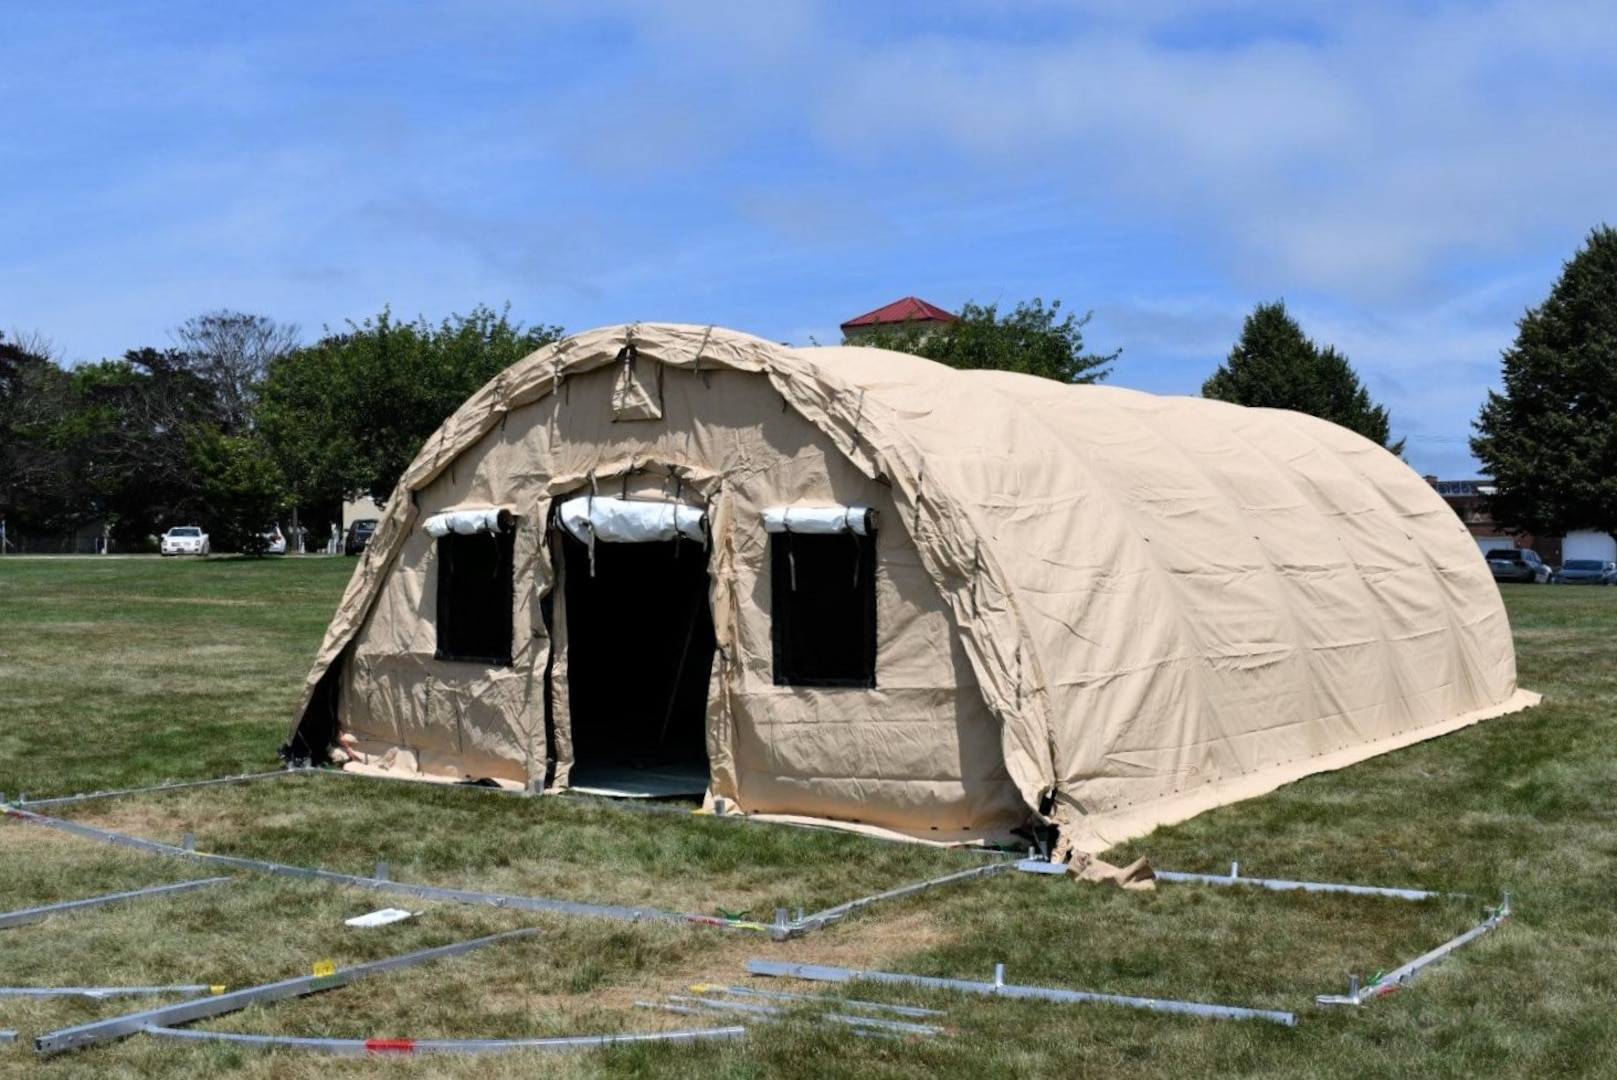 The first of five Alaska Medical Shelters awaits use after NMRTC employees raise the structure at the Navy's medical clinic in Newport, Rhode Island, on July 7, 2020. The Defense Logistics Agency partnered with Air Force and Navy medical to provide shelters for COVID-19 screening at naval medical facilities in the Northeast.